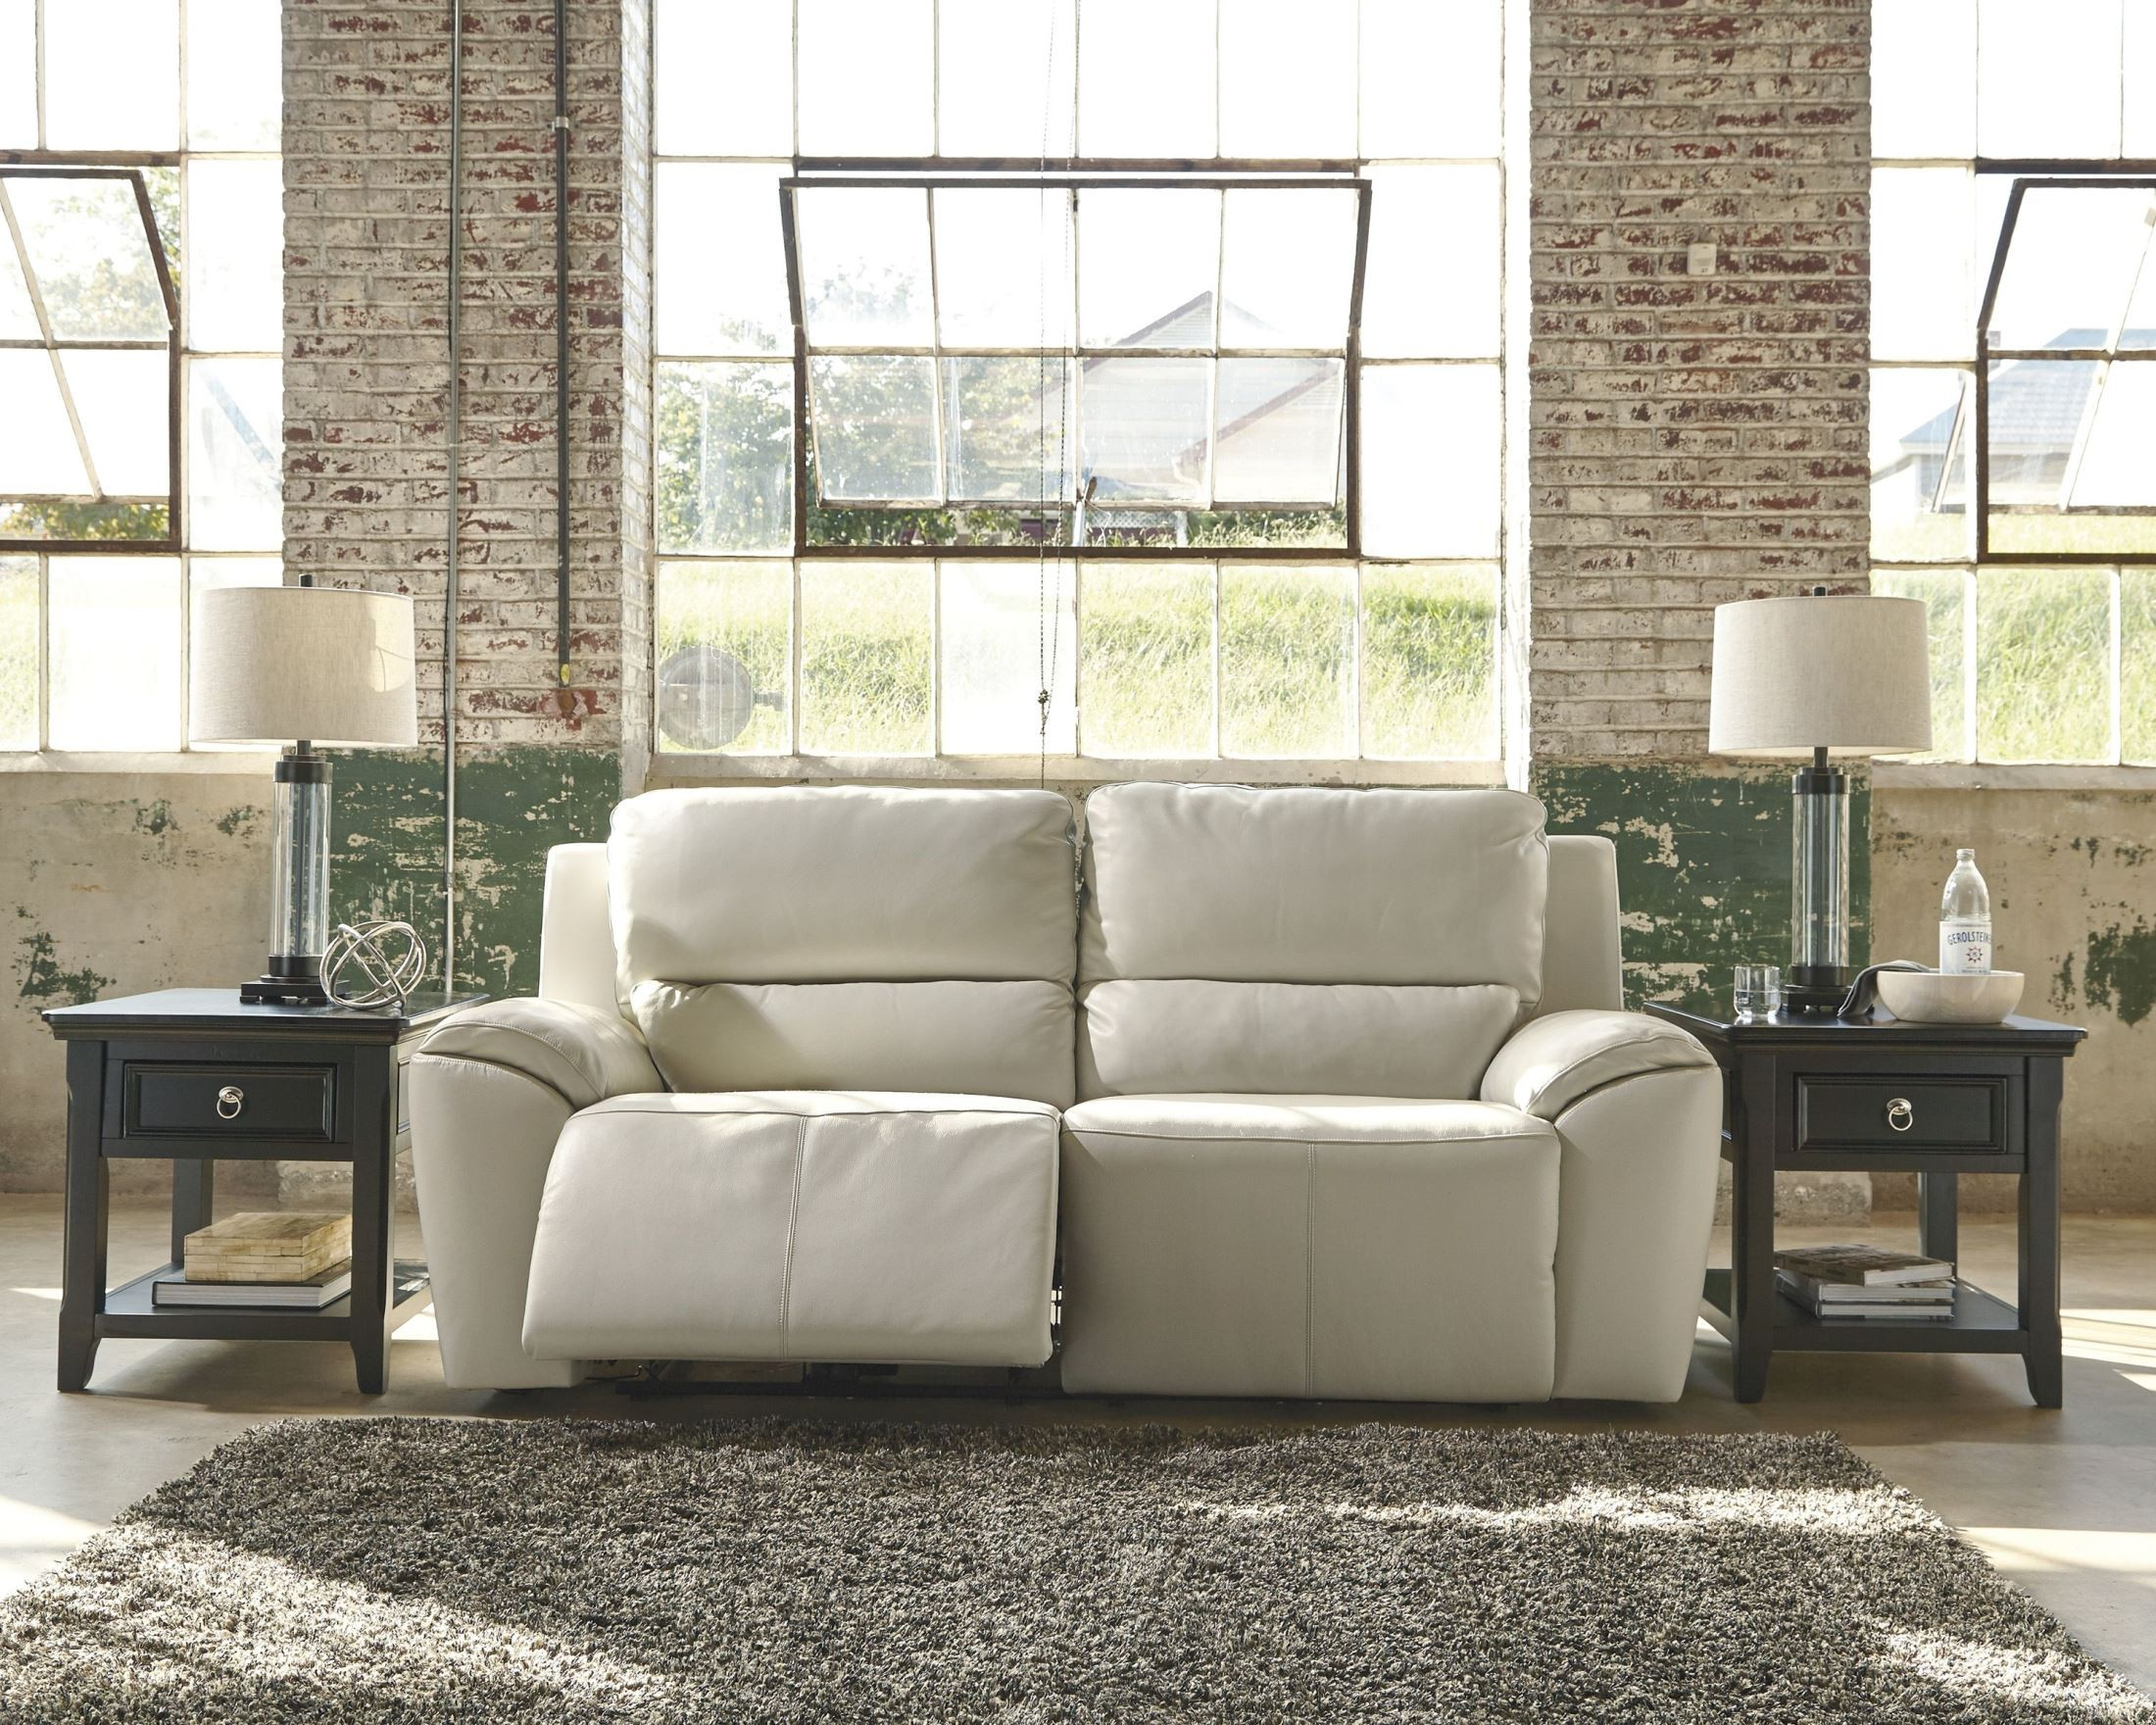 two seater sofa recliner sofas with storage underneath uk valeton cream 2 seat reclining from ashley u7350081